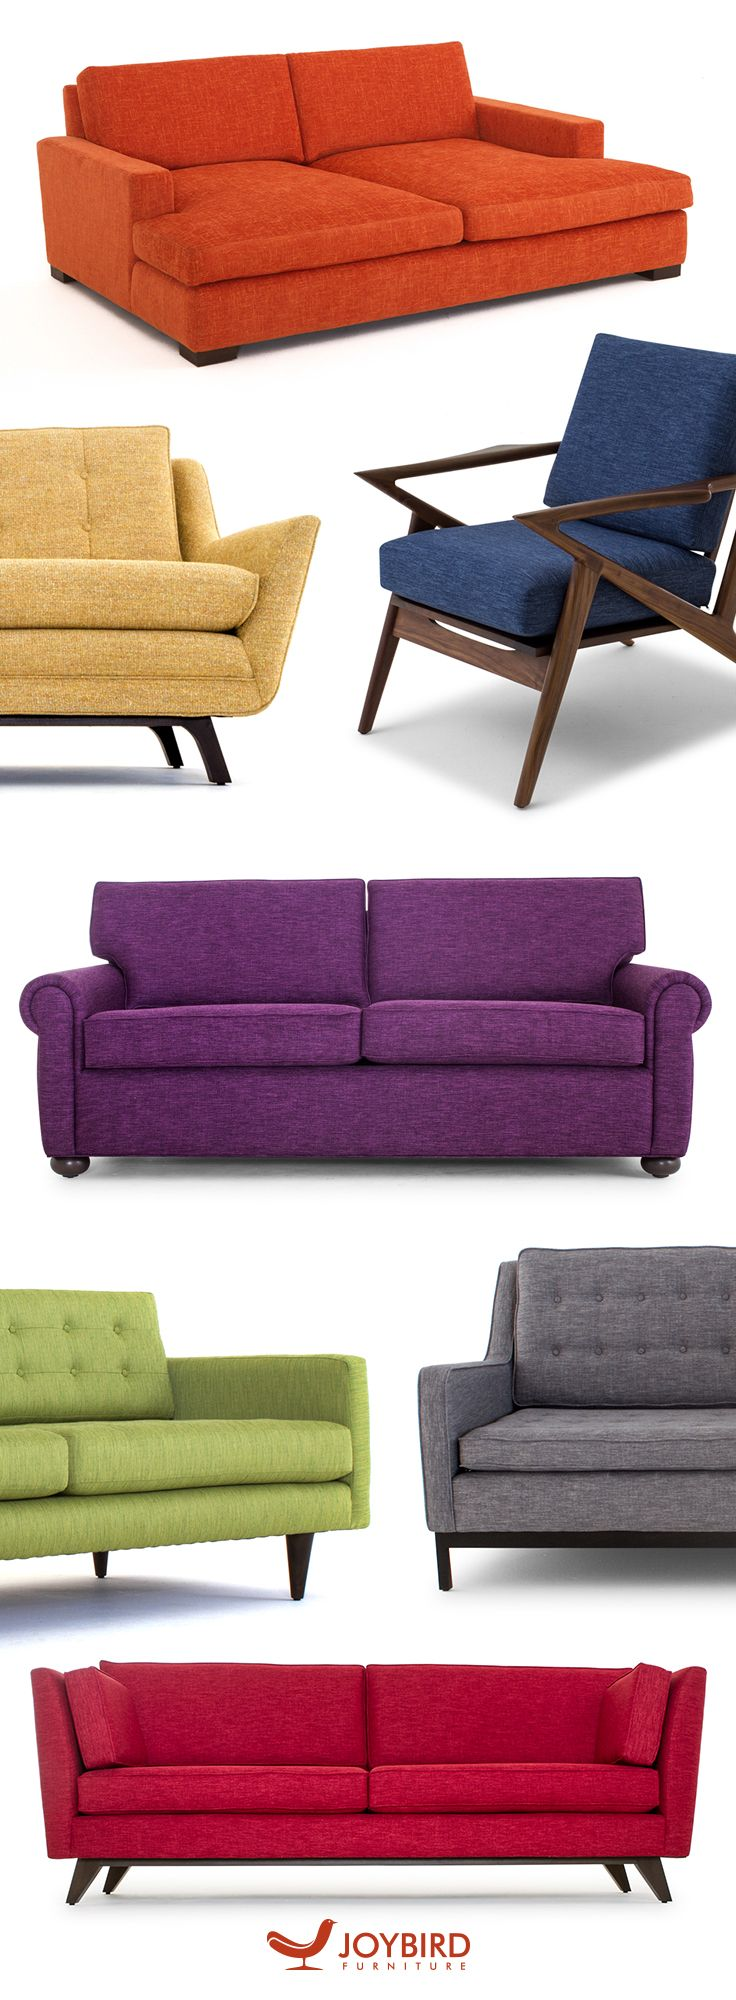 best furniture images on pinterest